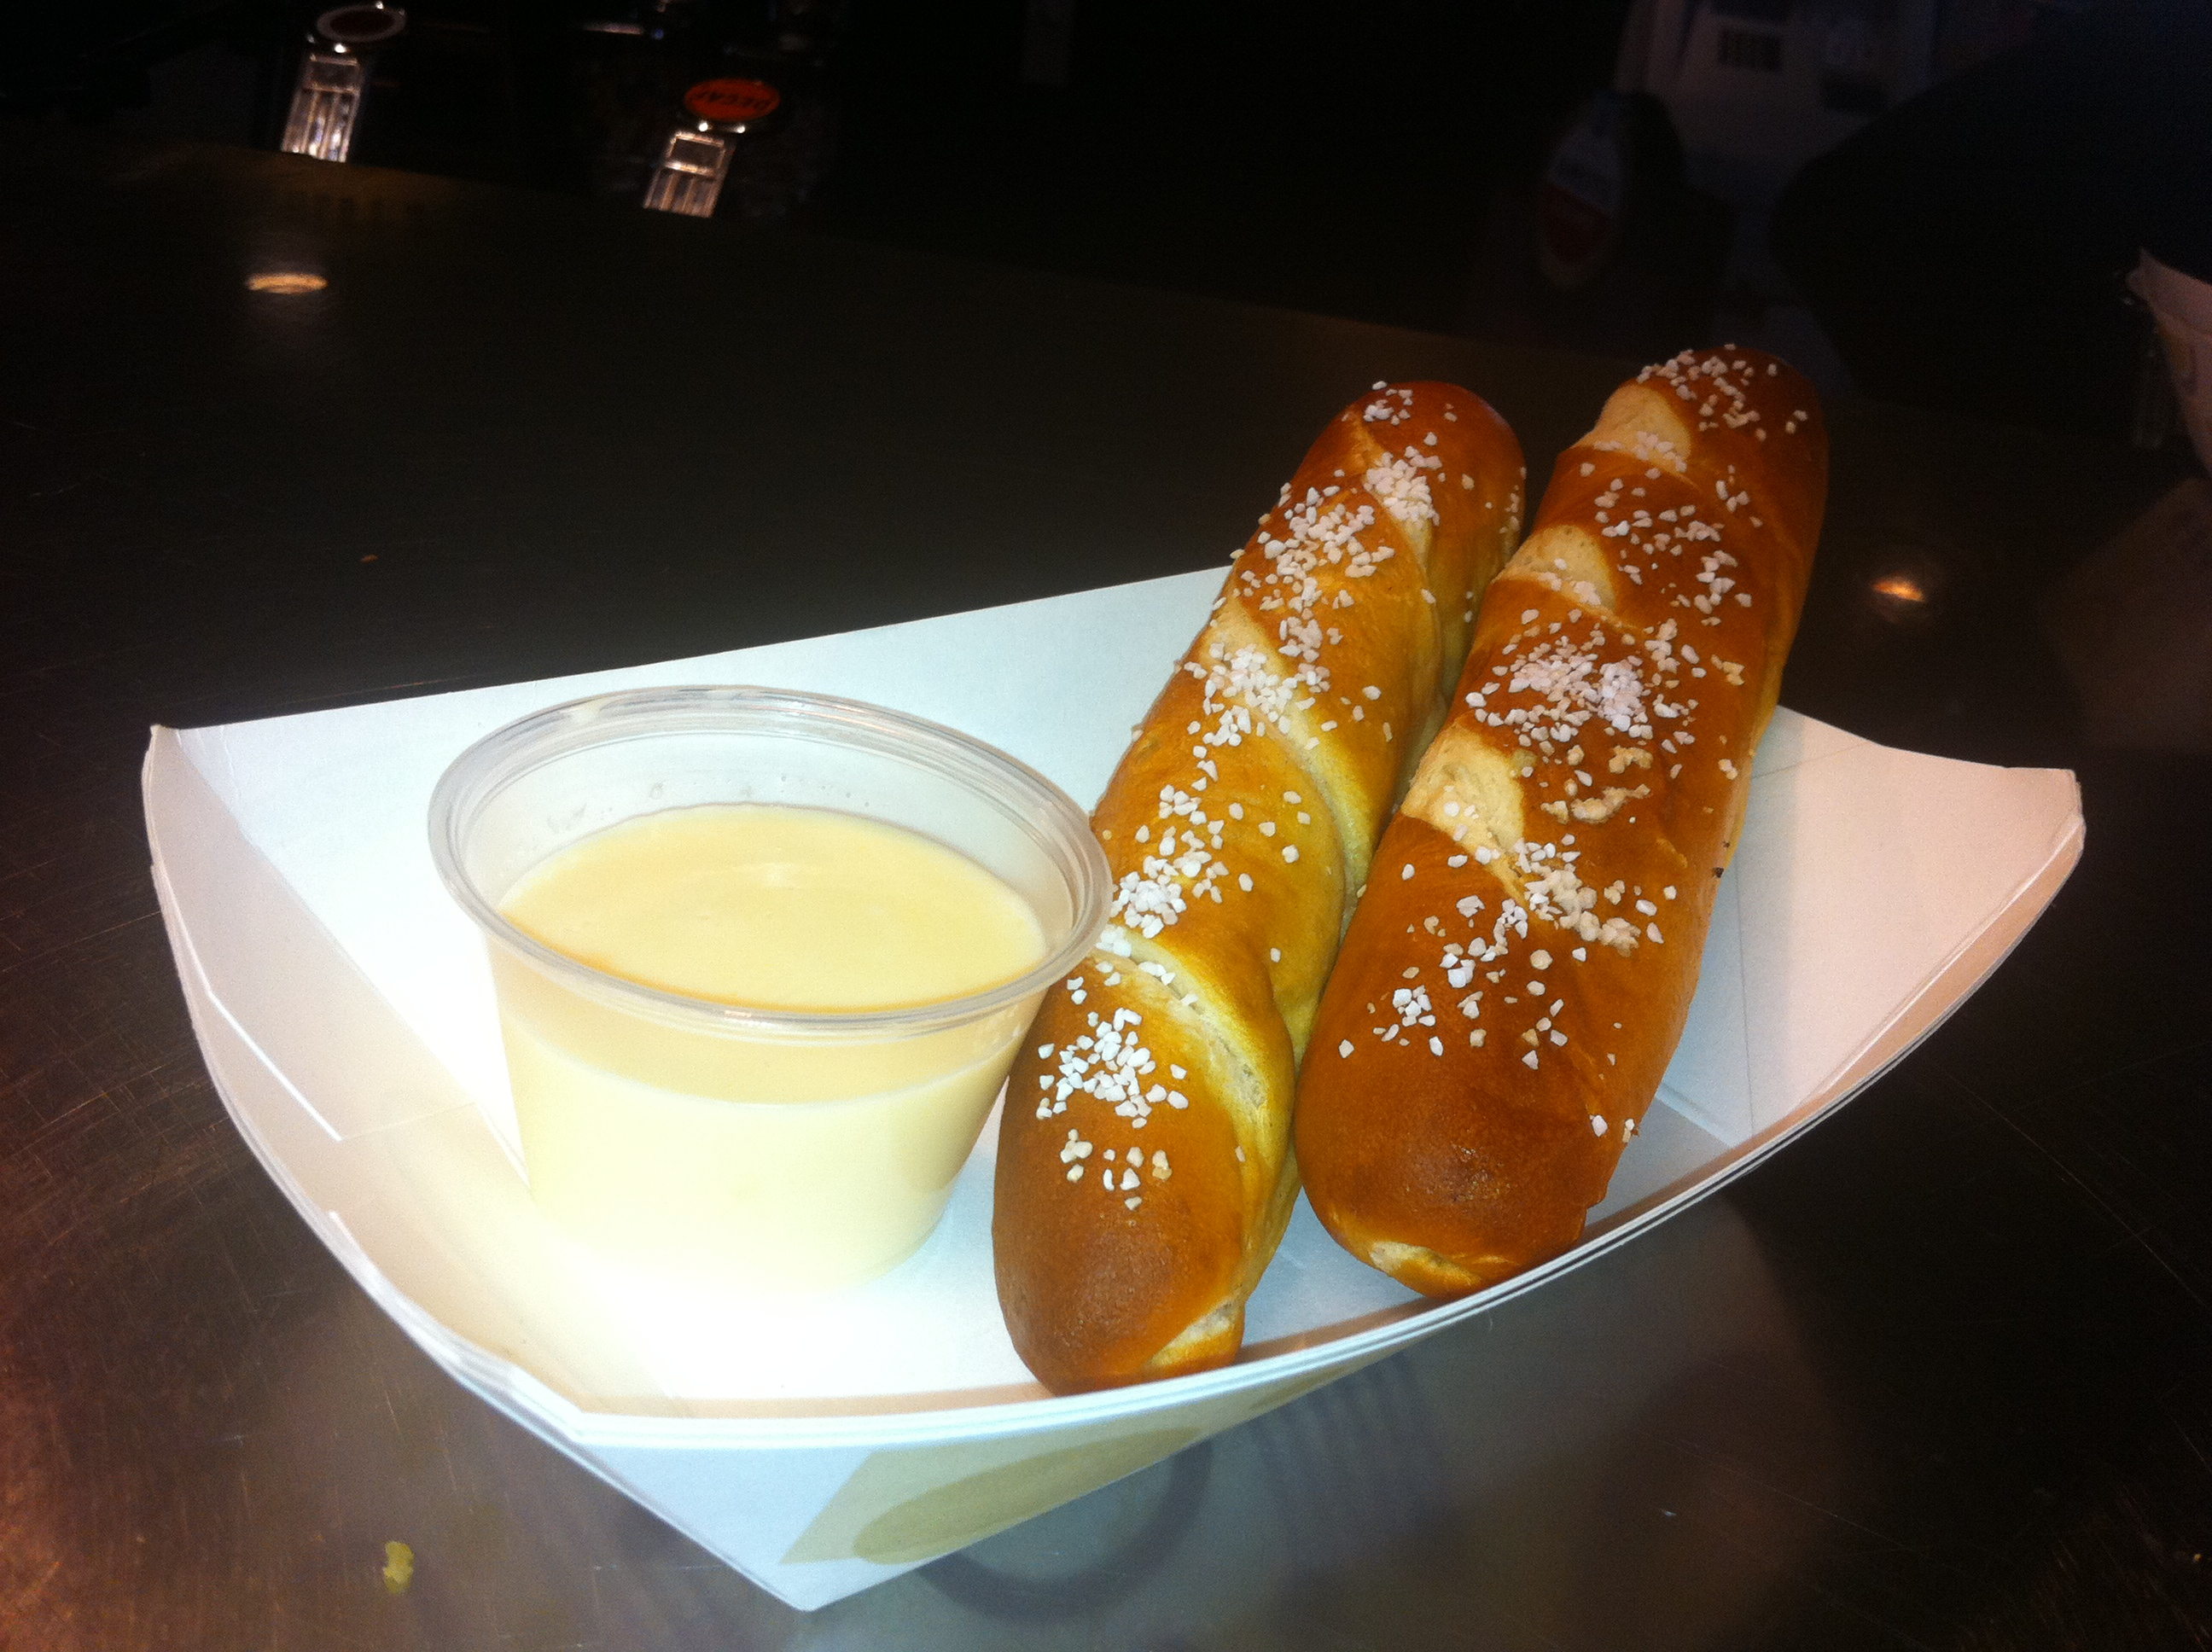 Pretzel Sticks W/Homemade Cheese Sauce